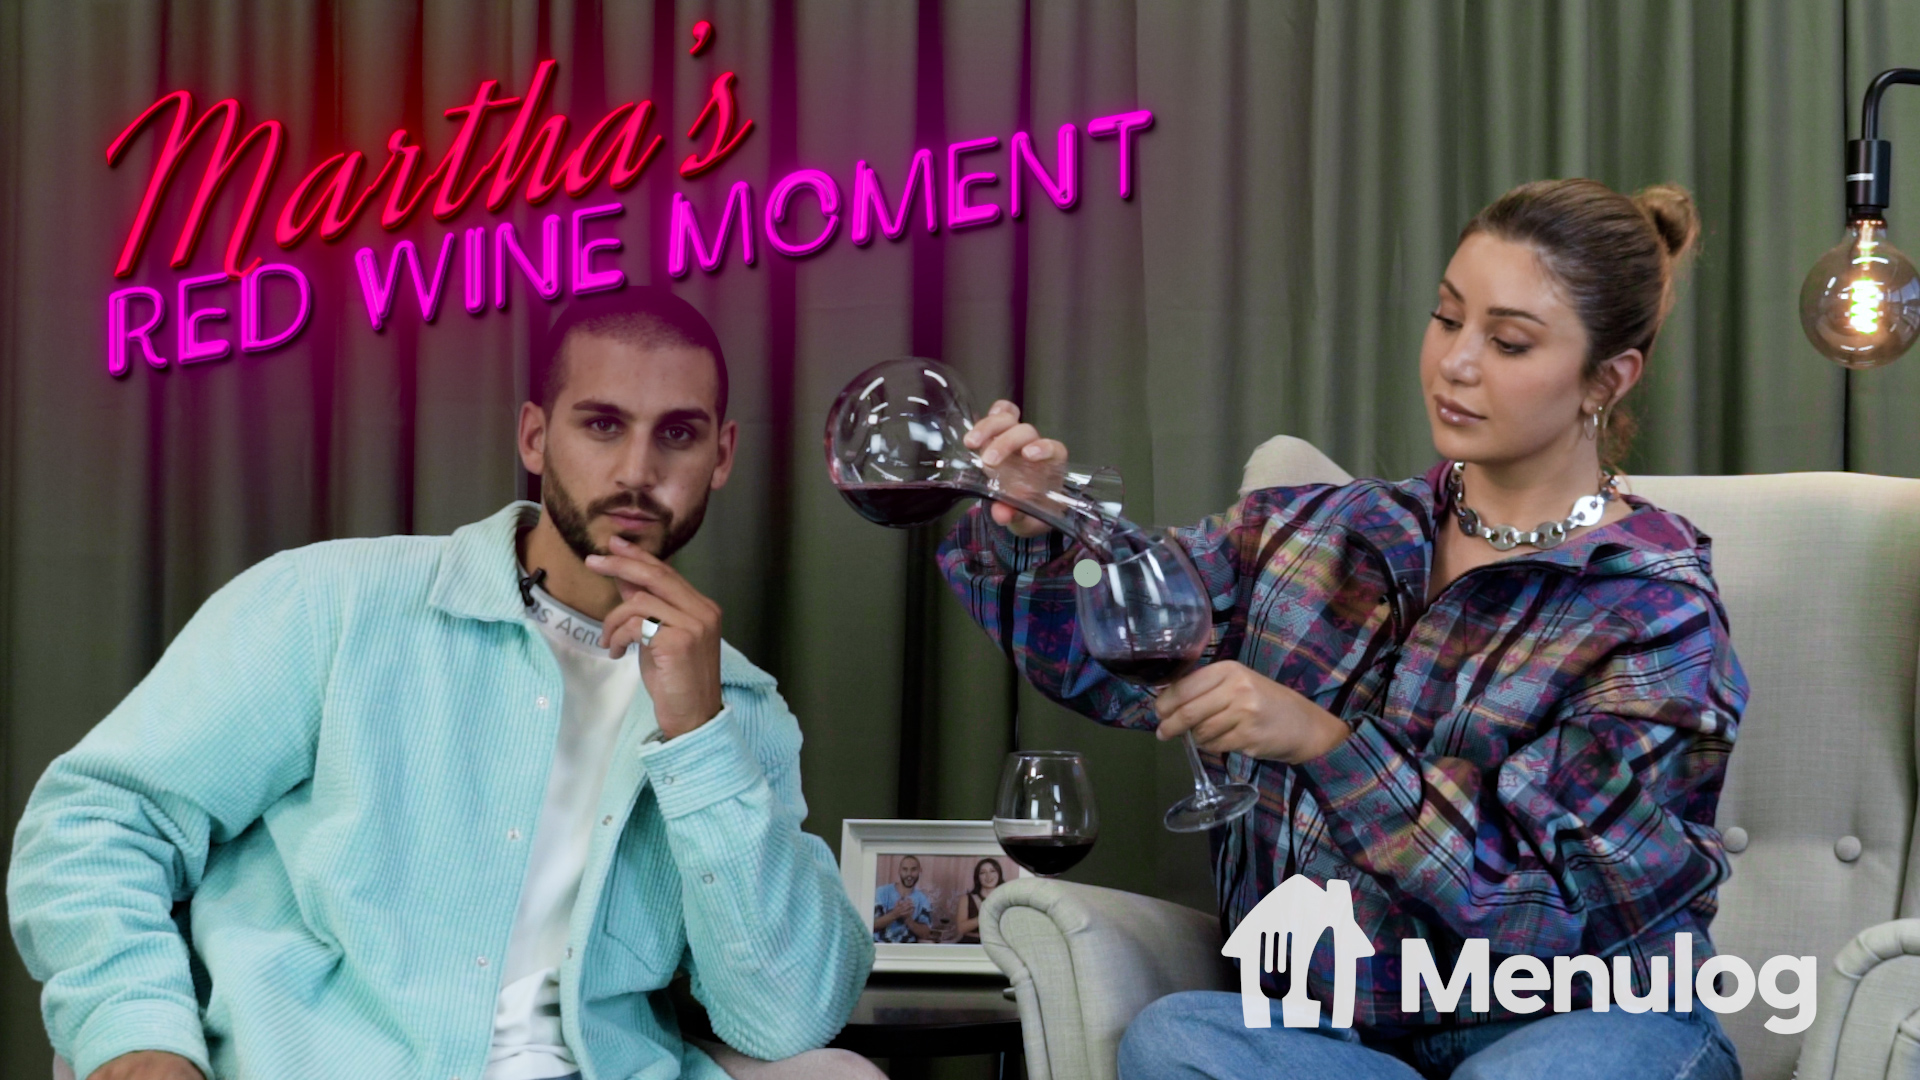 Martha's Red Wine Moment from Dinner Party #3, Season 8